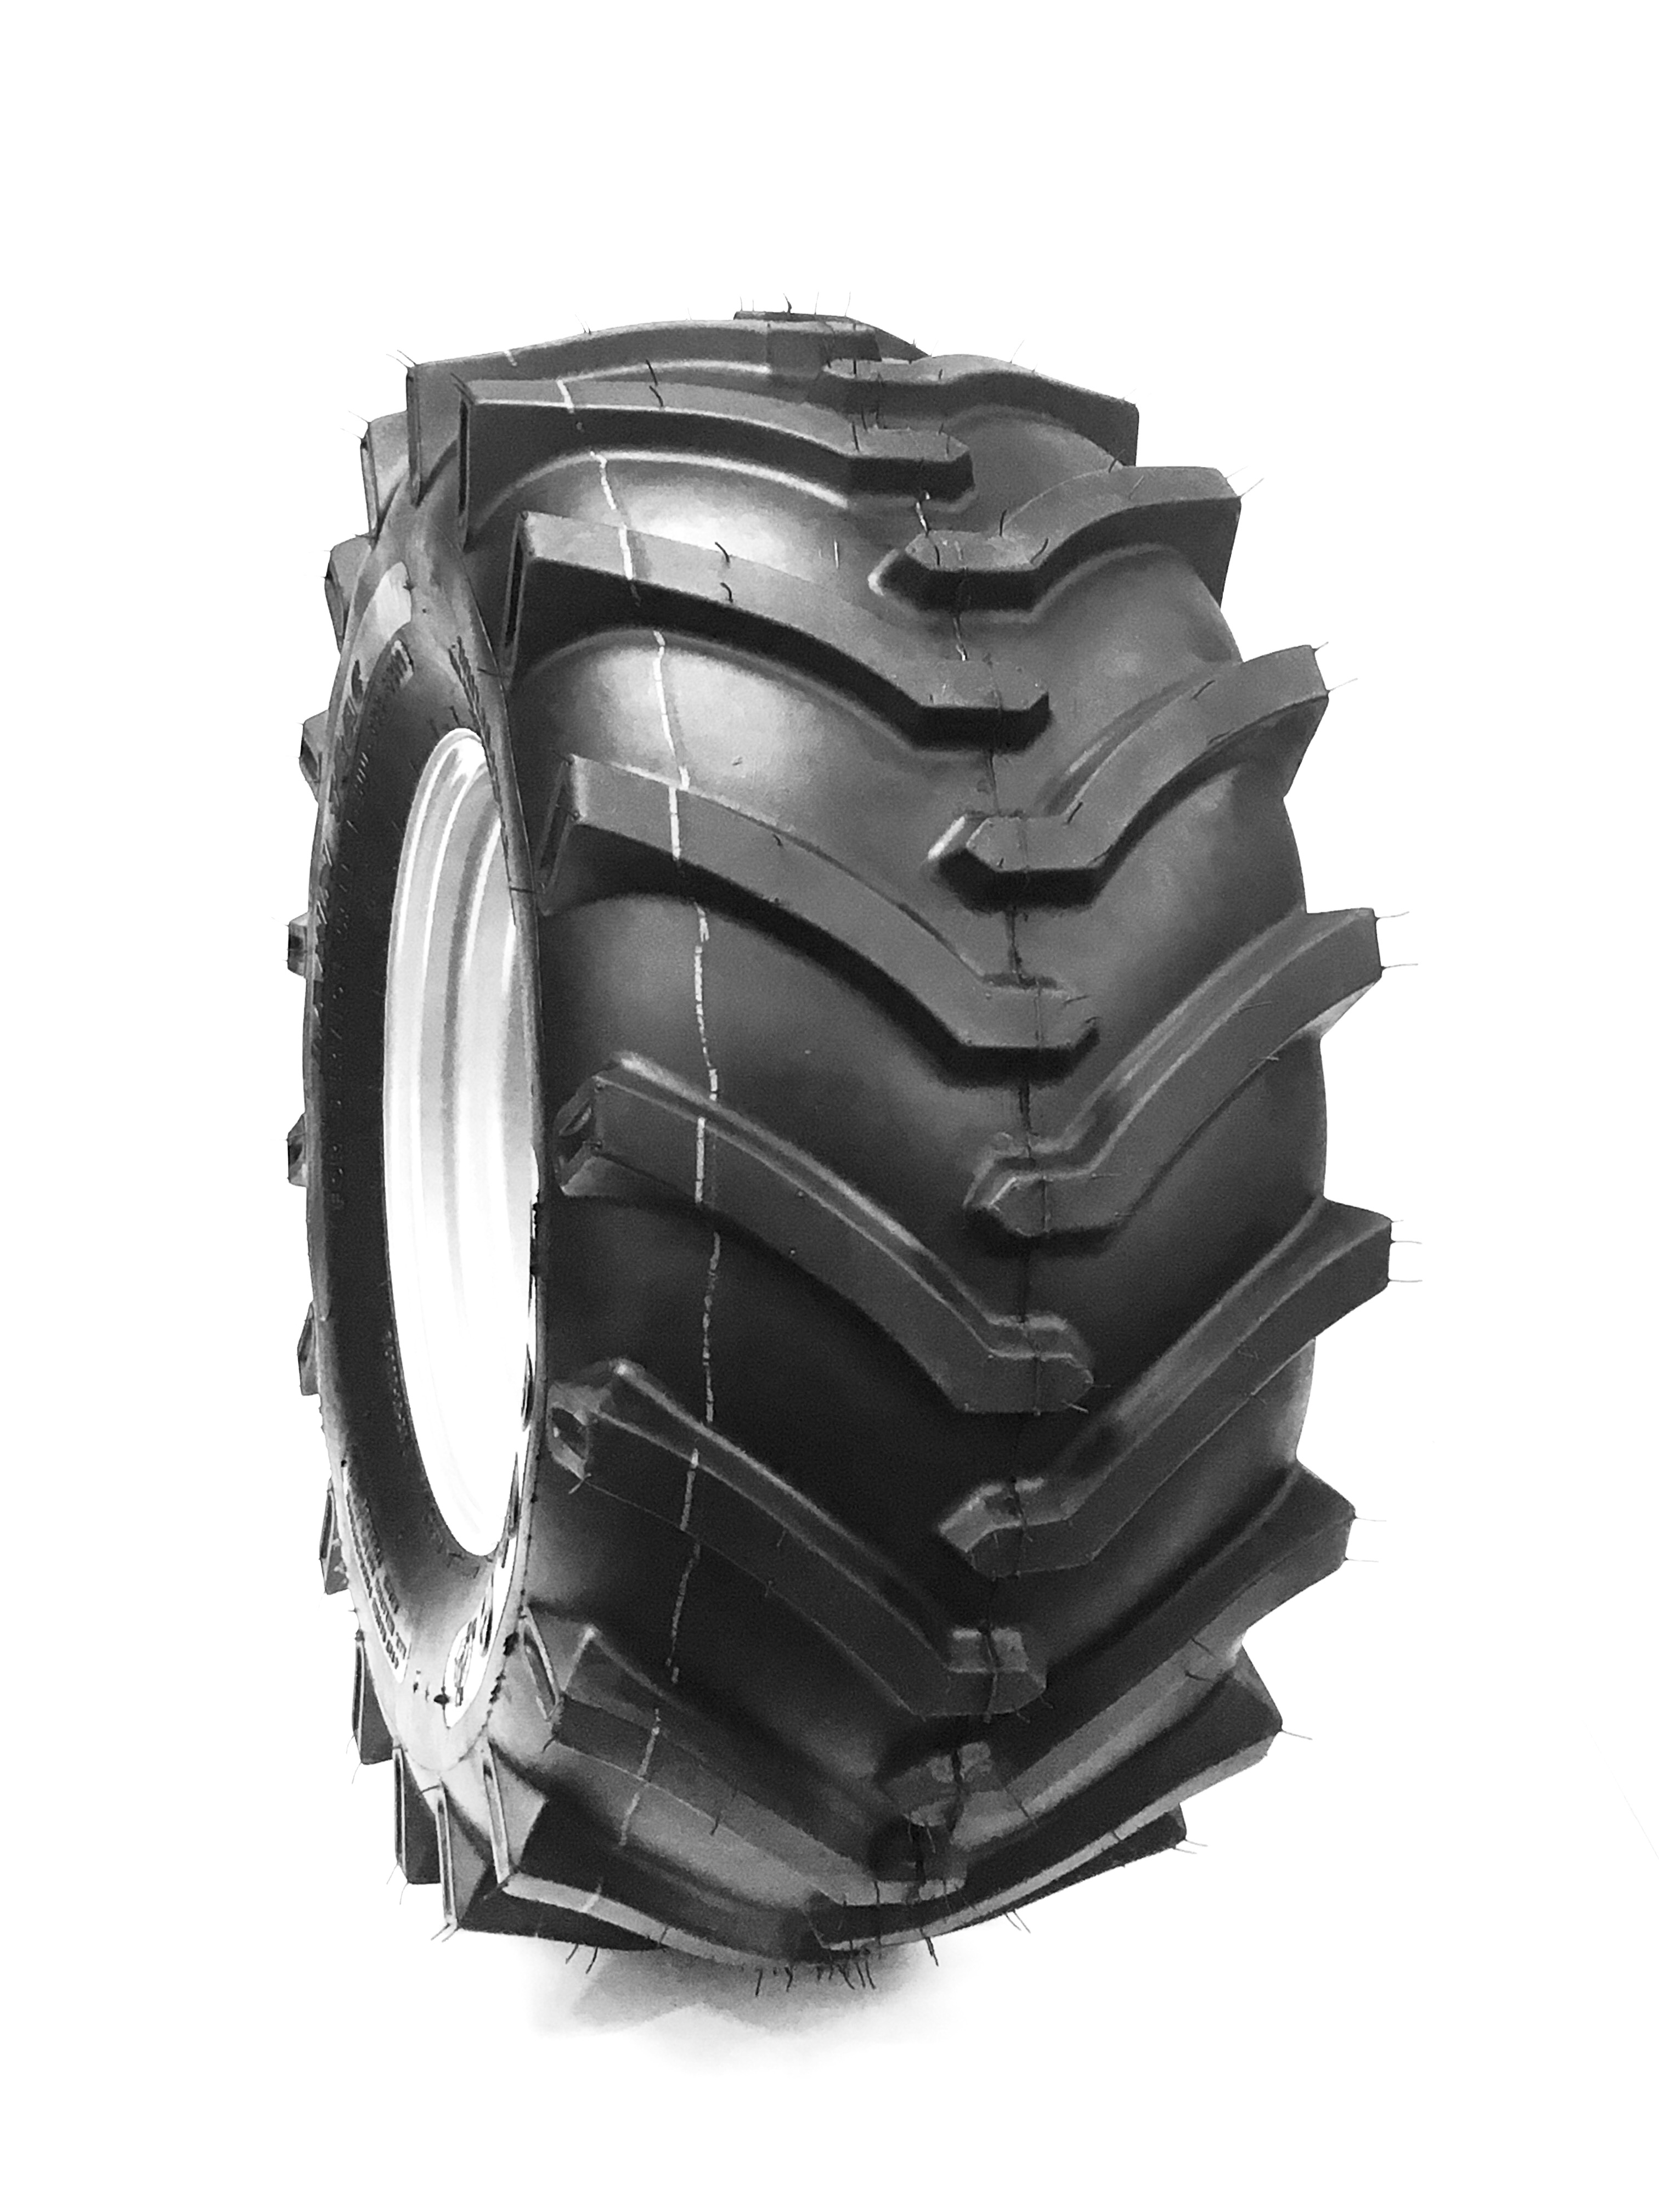 4ply Otr Lawn Trac R1 Lug Tires Outdoor Tire